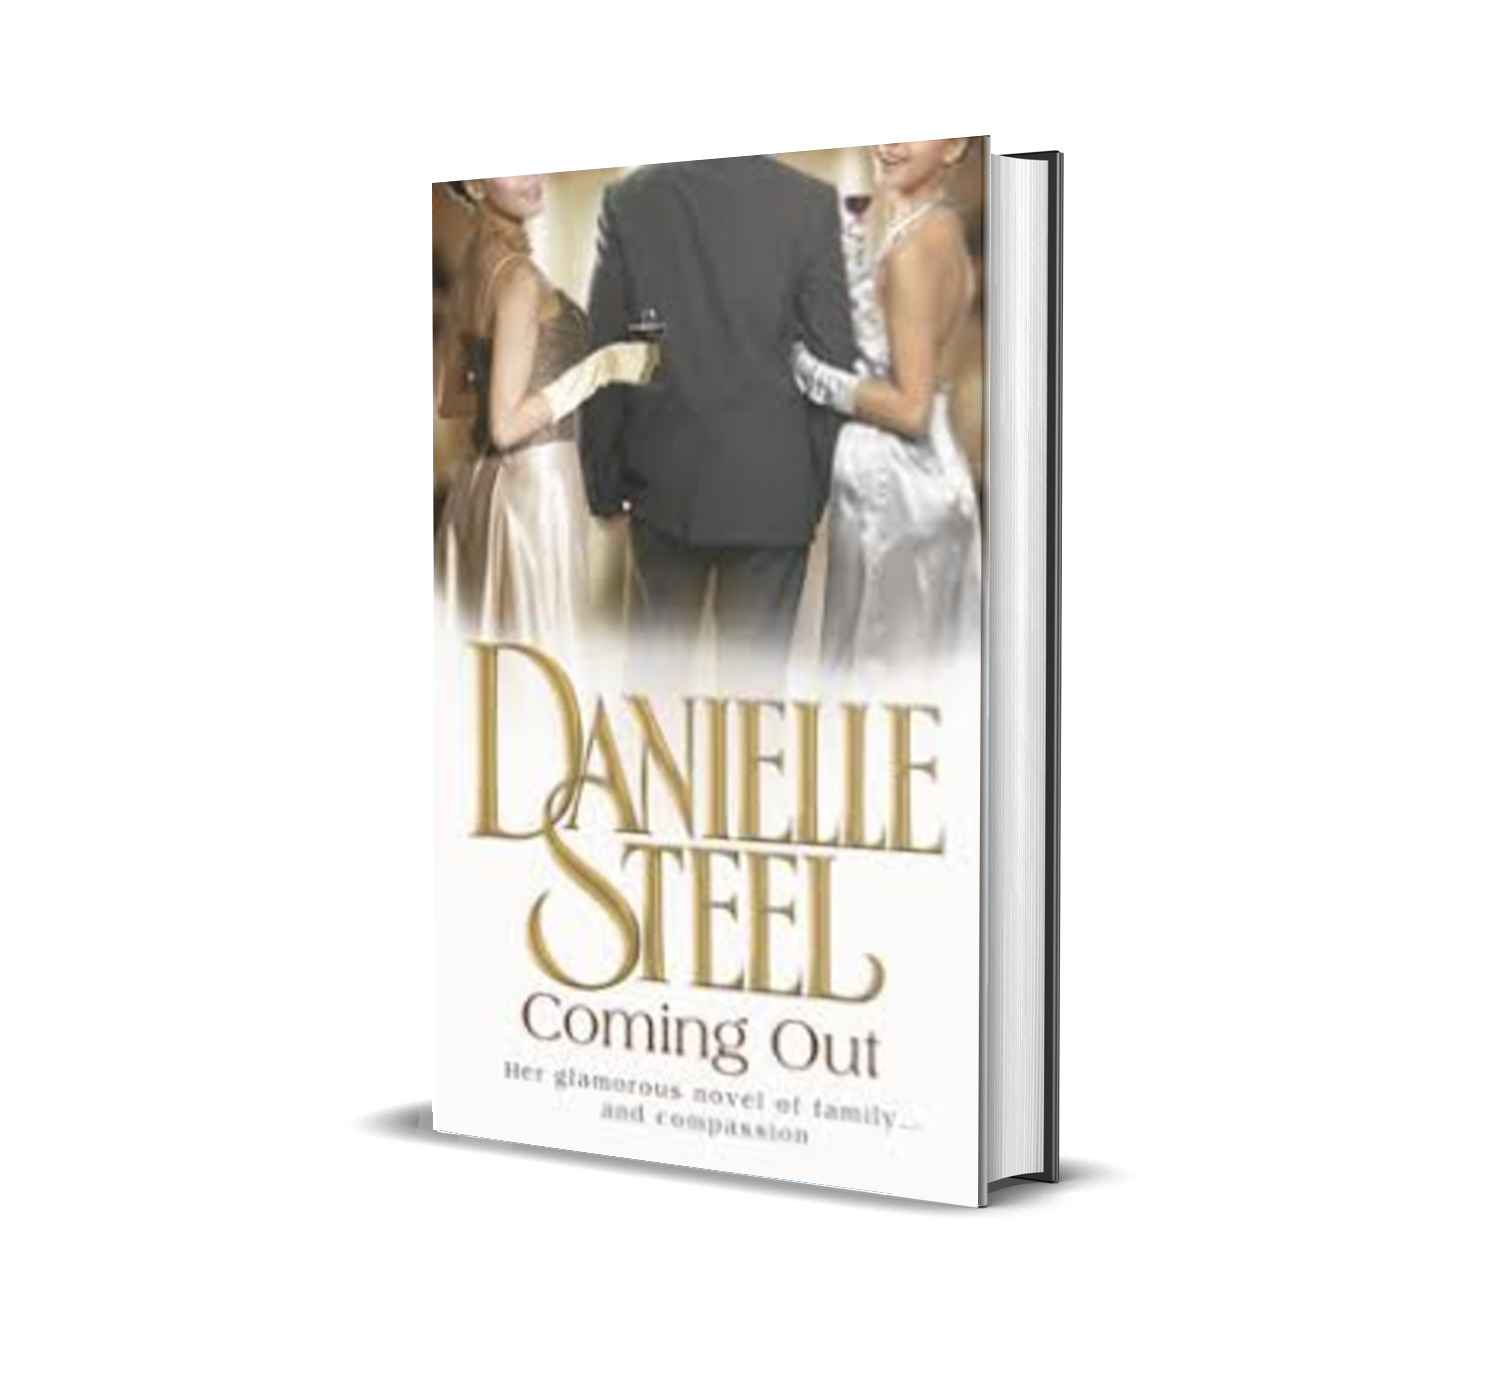 COMING OUR DANIELLE STEEL